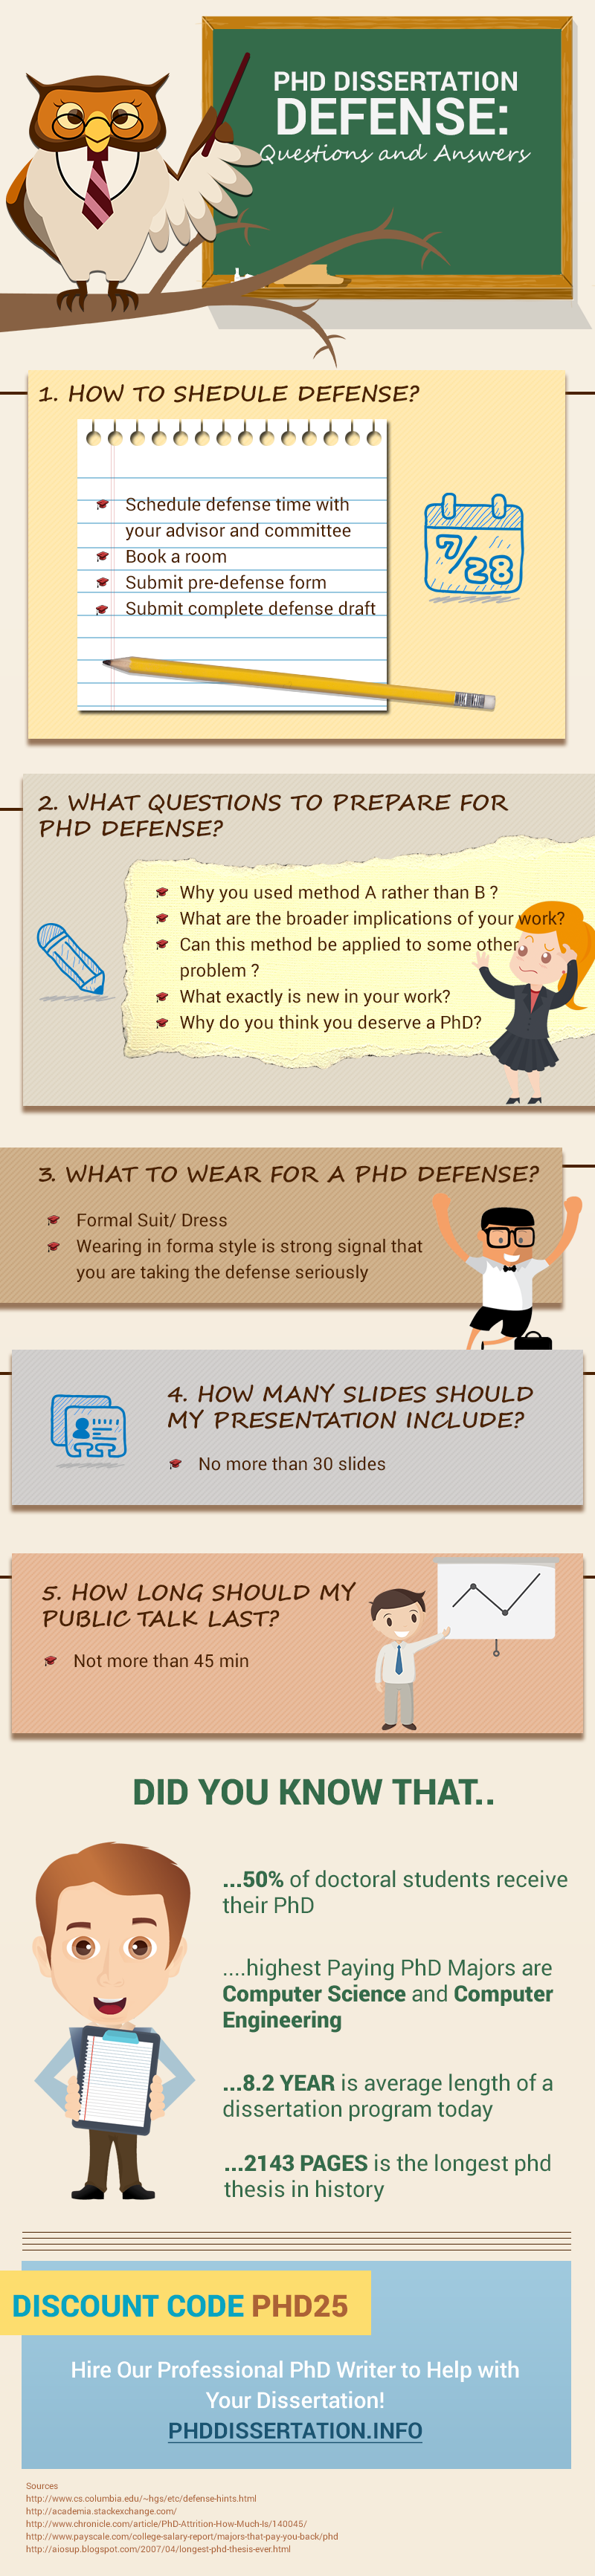 phd thesis defence questions Phd thesis defence questions we've successfully helped hundreds of students around the world and try to keep it that way.